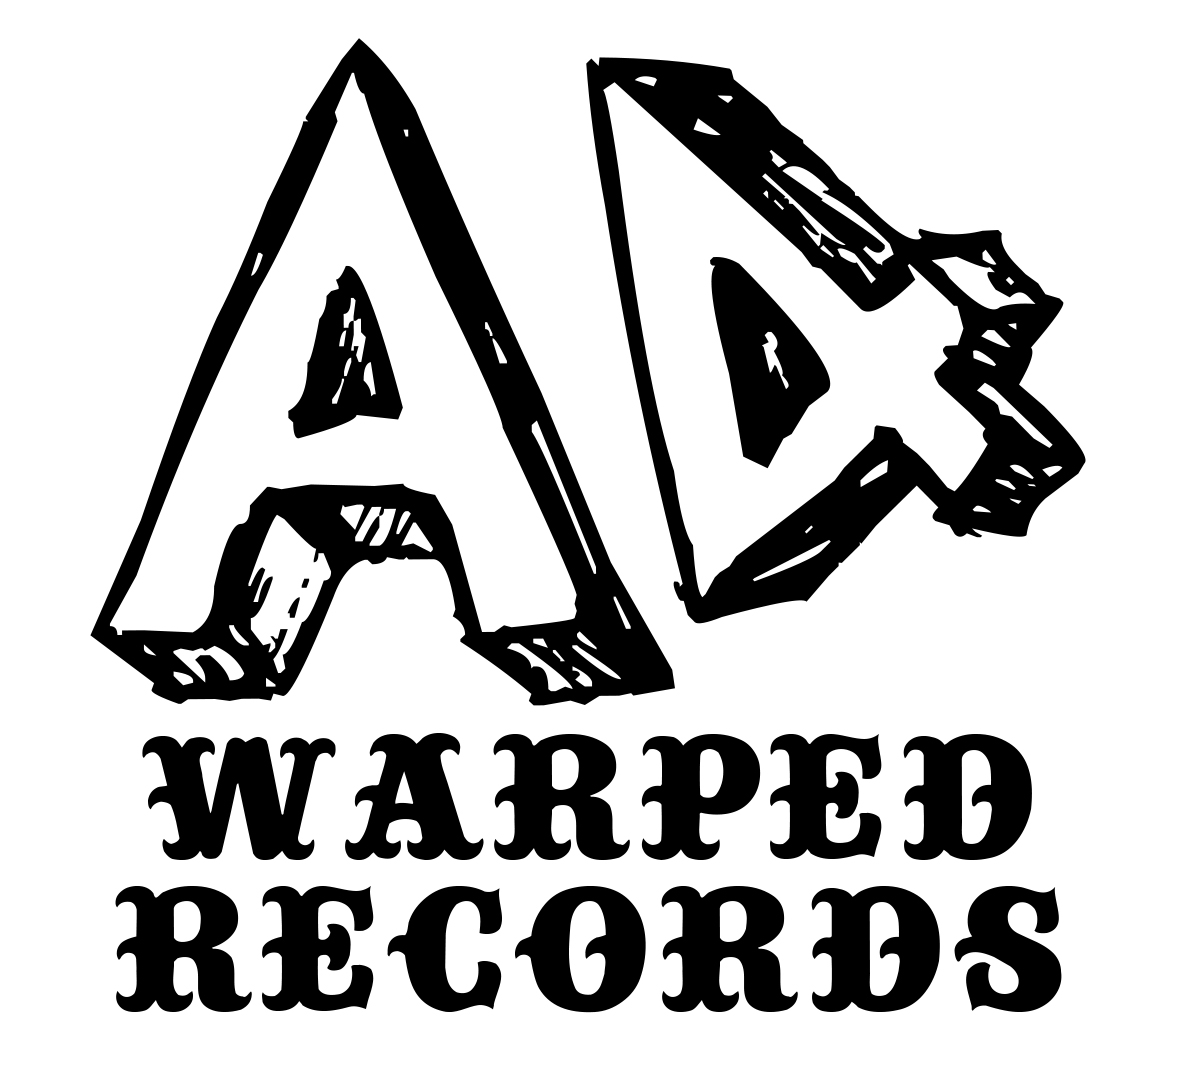 warped records